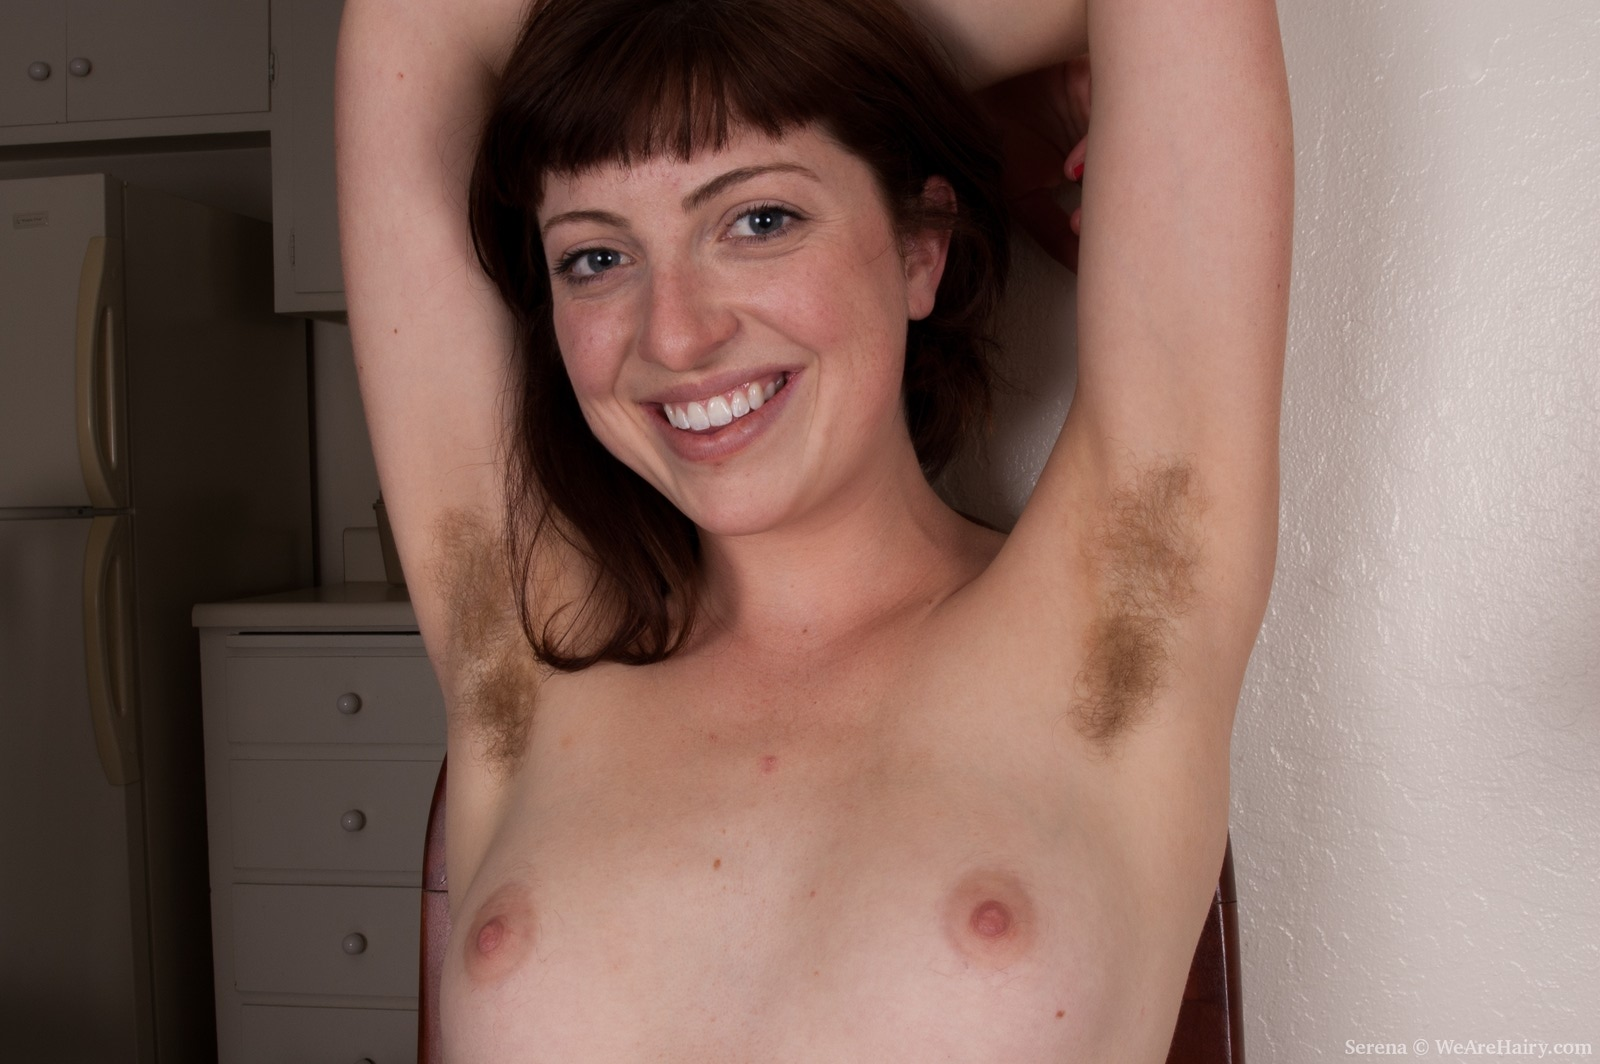 Red haired woman with hairy pussy and armpits, serena grandi is playing miranda and getting fucked